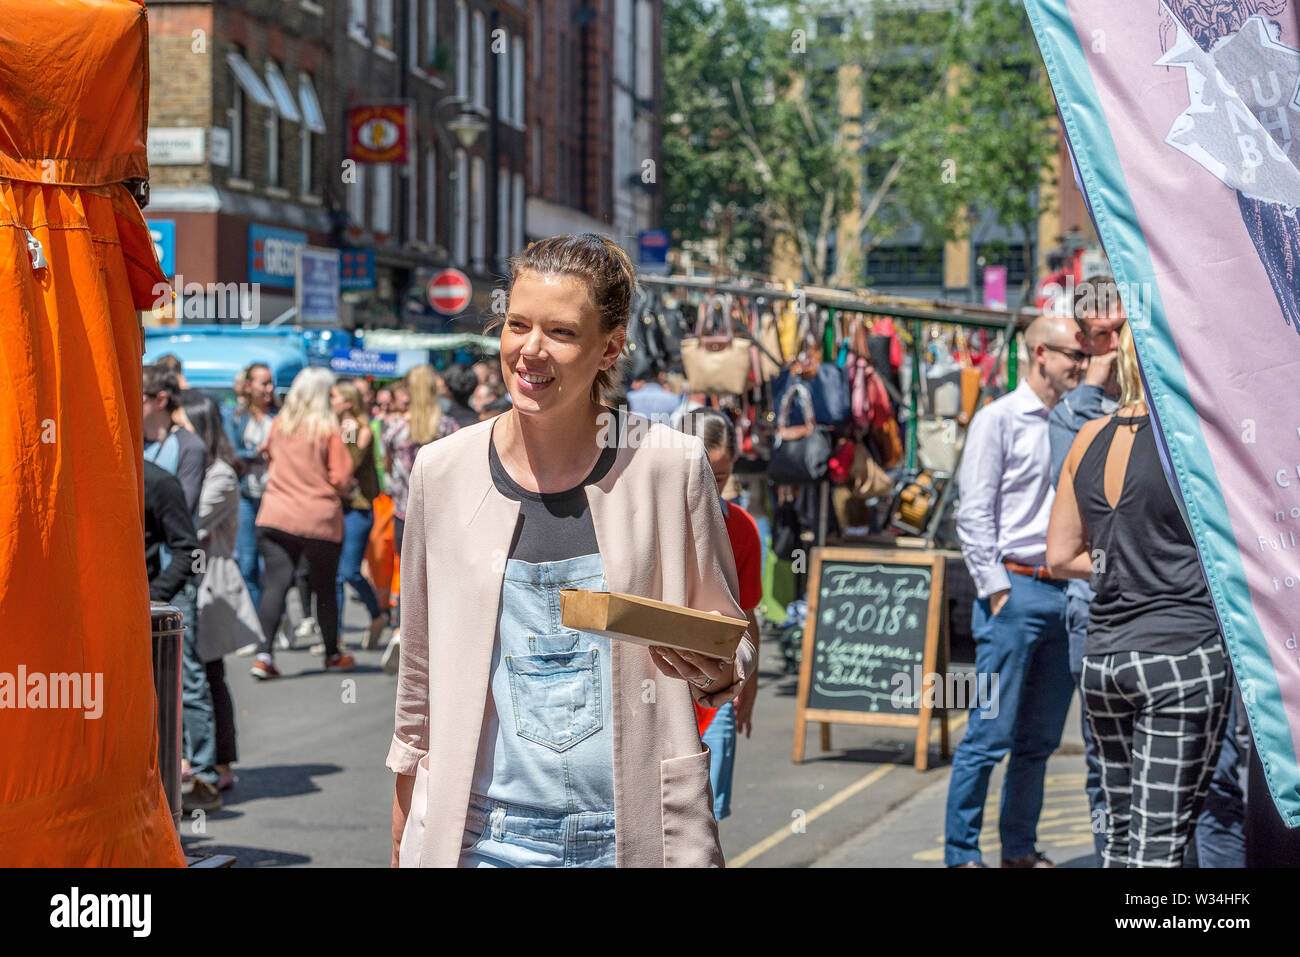 The open air and colourful street market at Leather Lane during a busy lunch hour - Stock Image